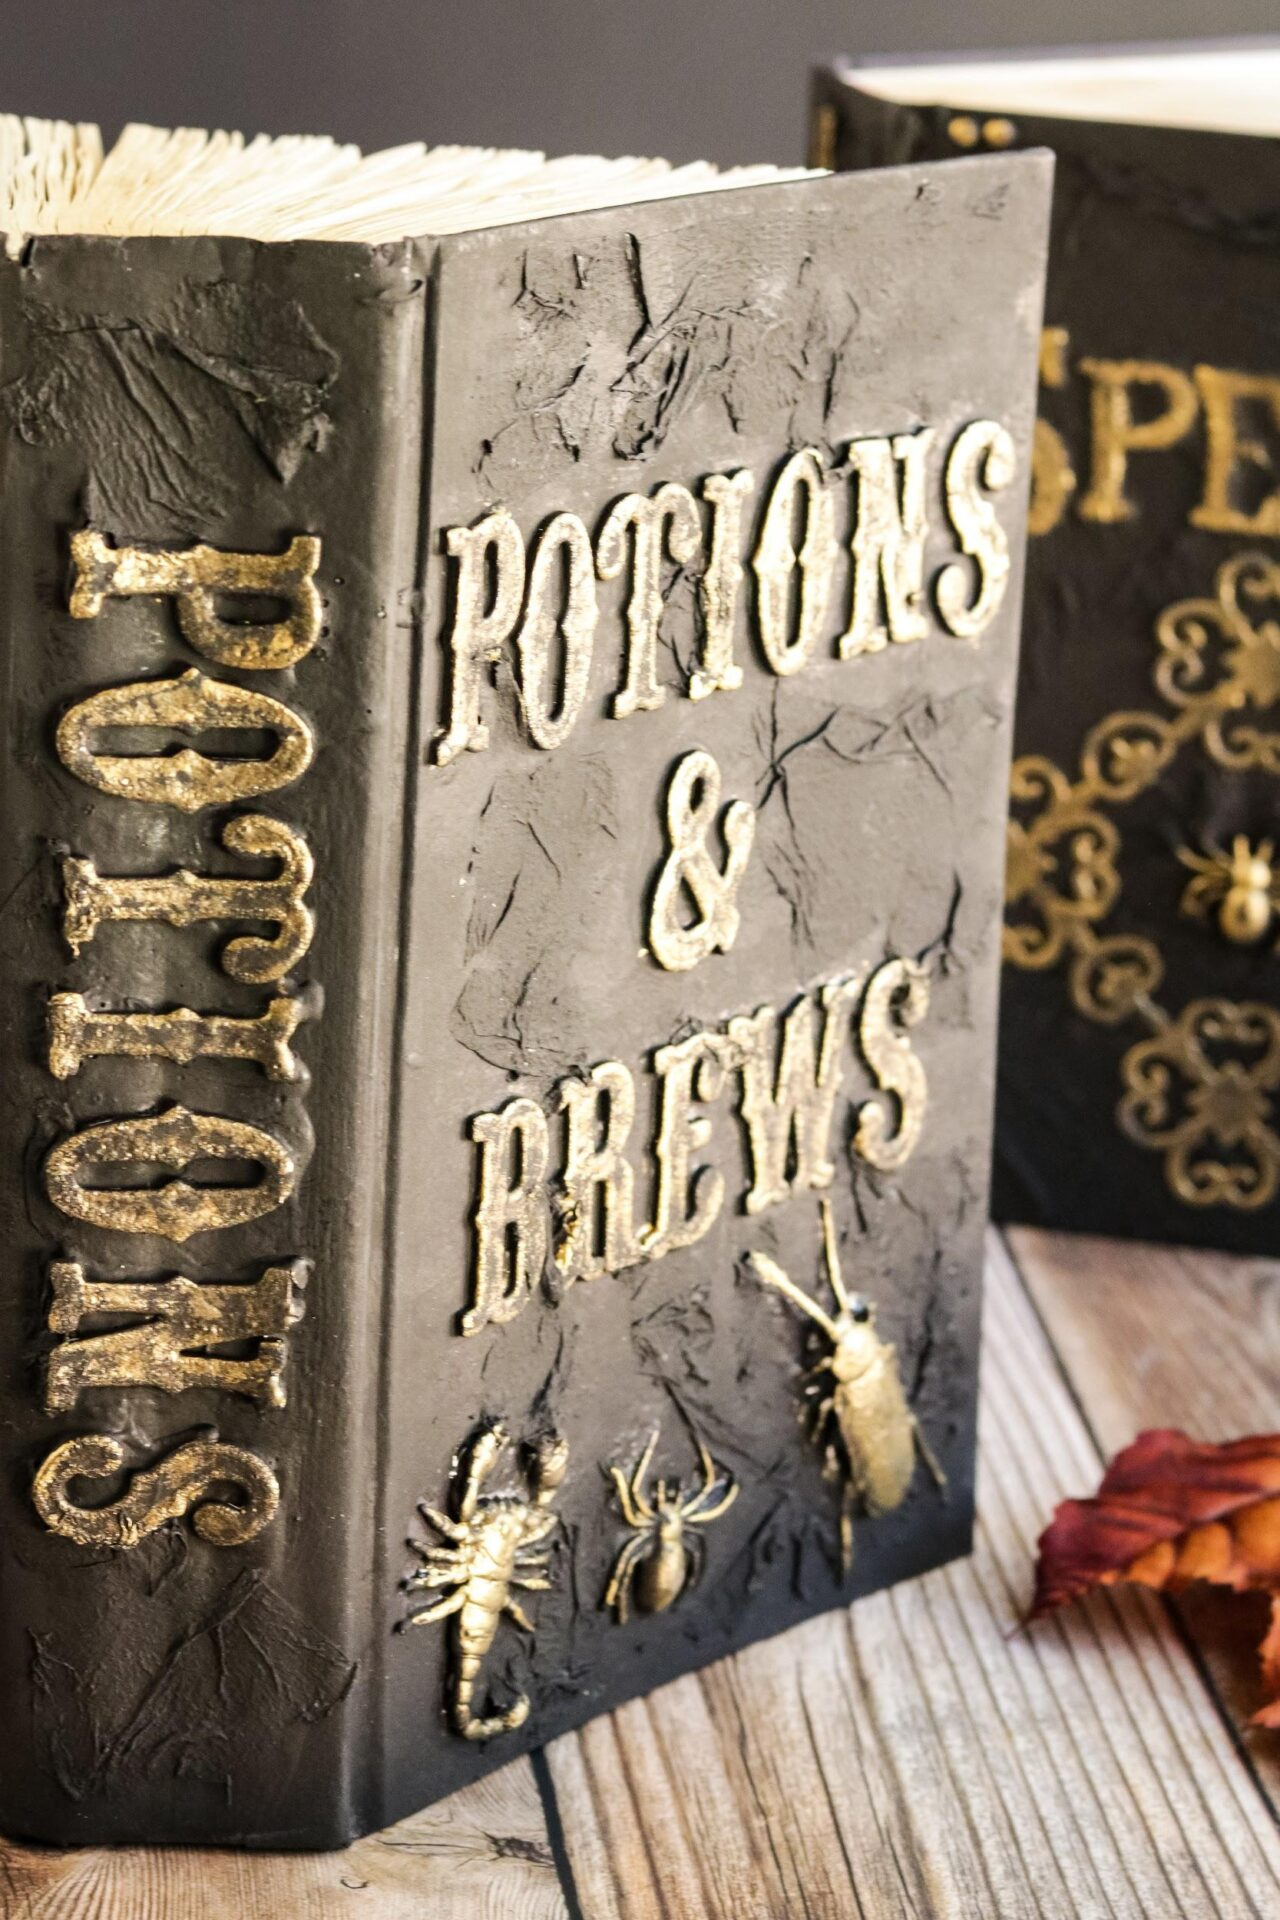 Are you a lover of decorating for Halloween? This DIY Spell Book is a must for your Halloween decorating ideas this year. Check out how easy it is to make